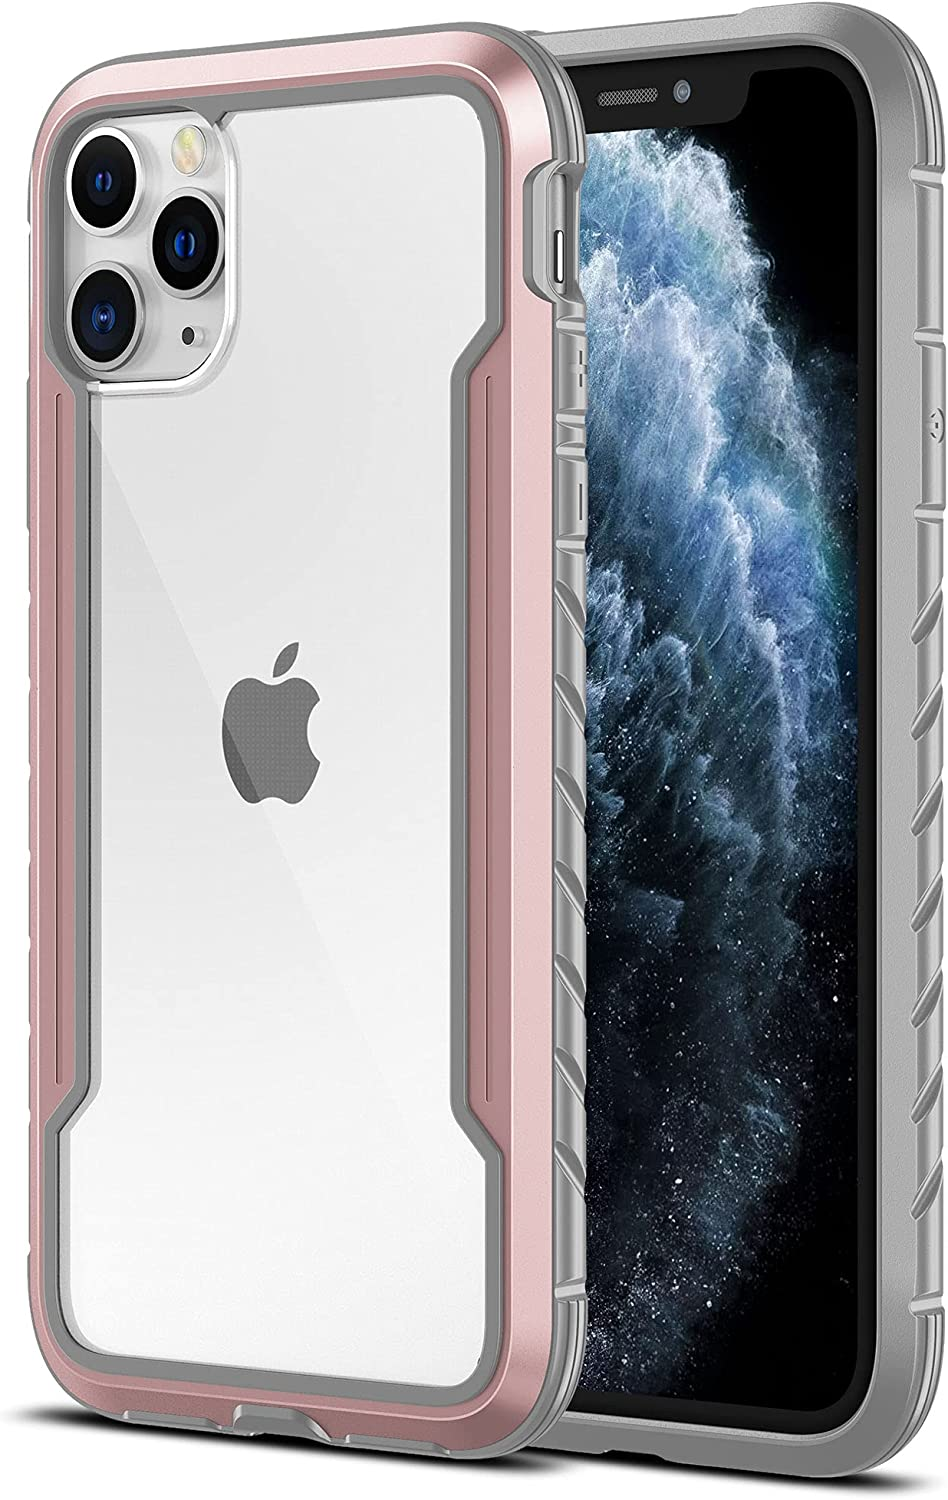 MRYUESG for iPhone 11-Pro Max Case, Aluminum Alloy Frame, Clear Hard Back, Silicone Soft Bumper, Military Grade Shock-Proof, Heavy Duty Protective Phone Cover, for iPhone-11 Pro-Max Cases, Rose Gold